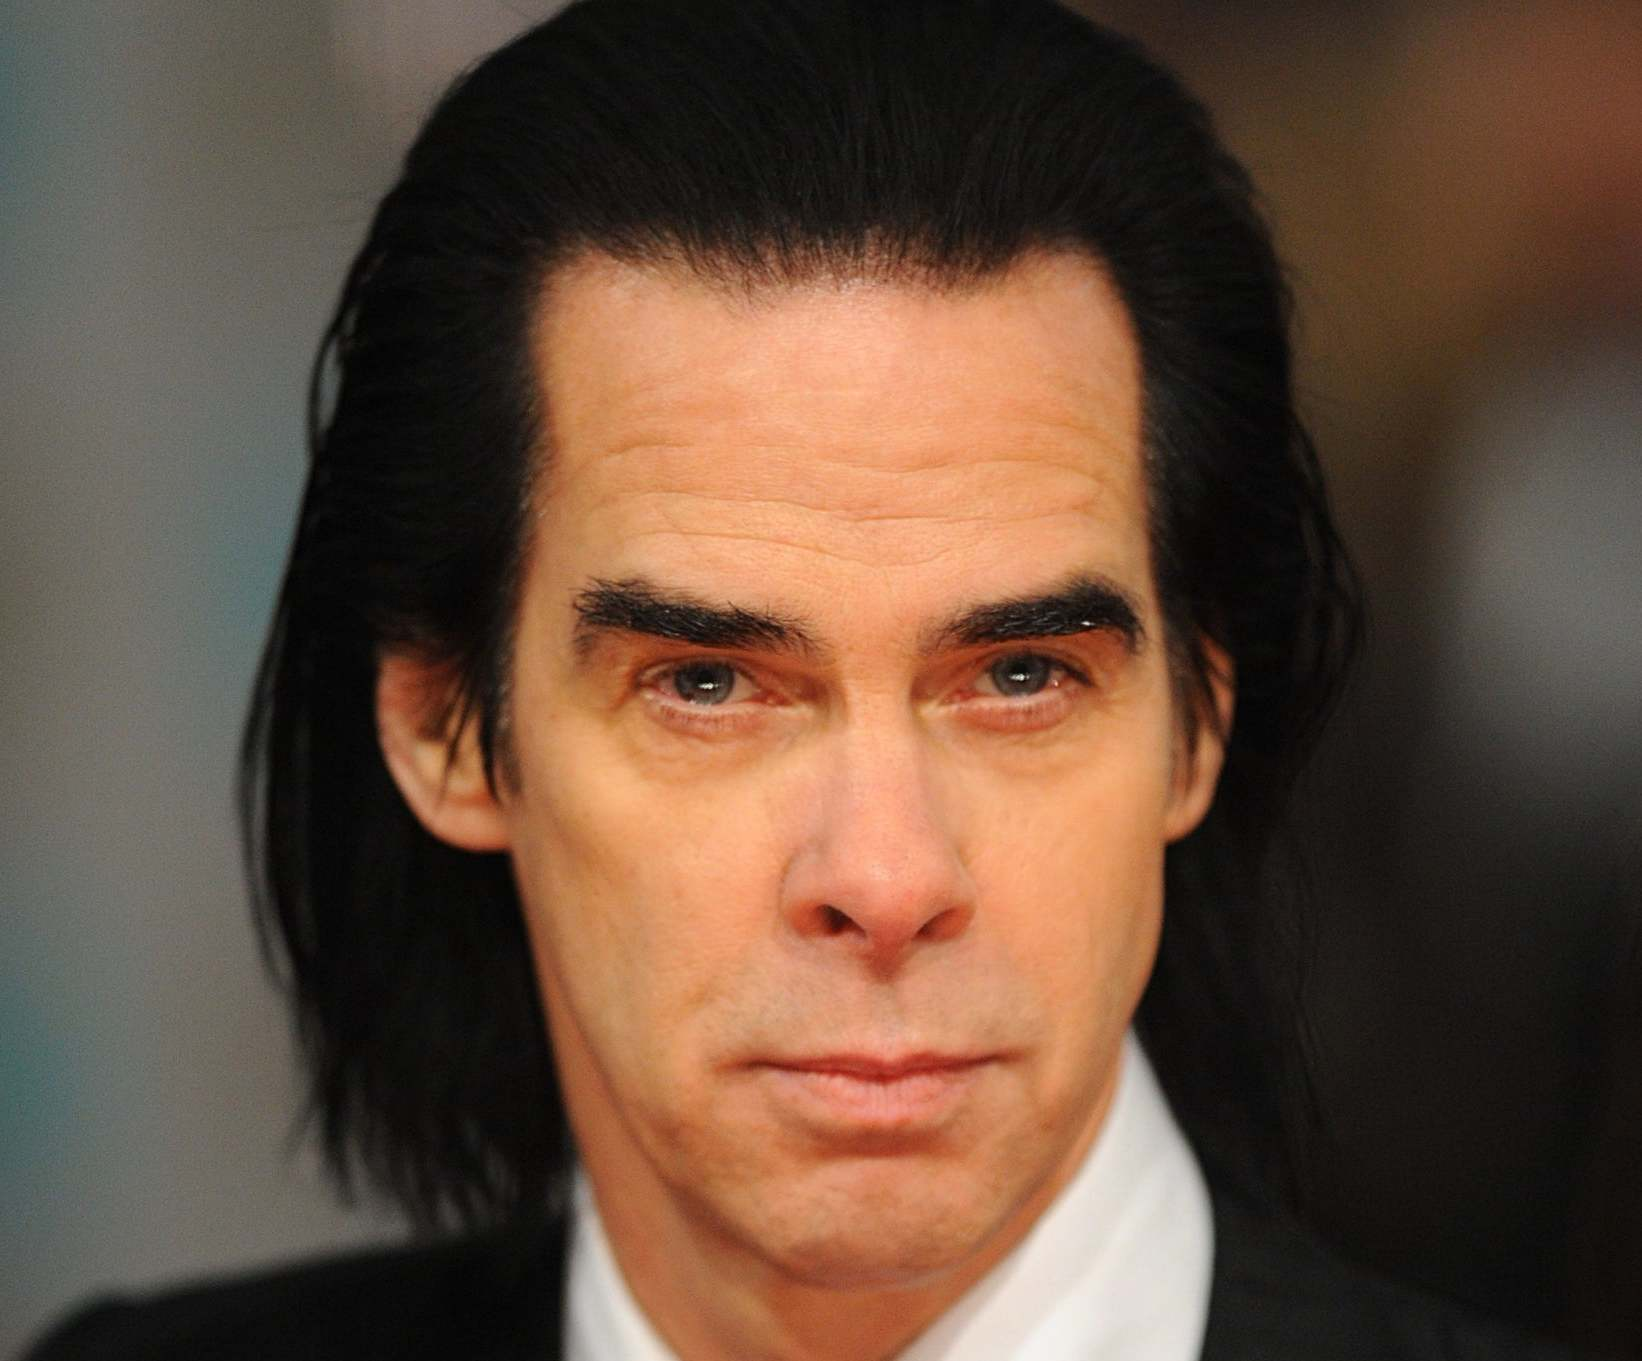 Nick Cave recalls shock at being dumped by PJ Harvey: 'I almost dropped my syringe'